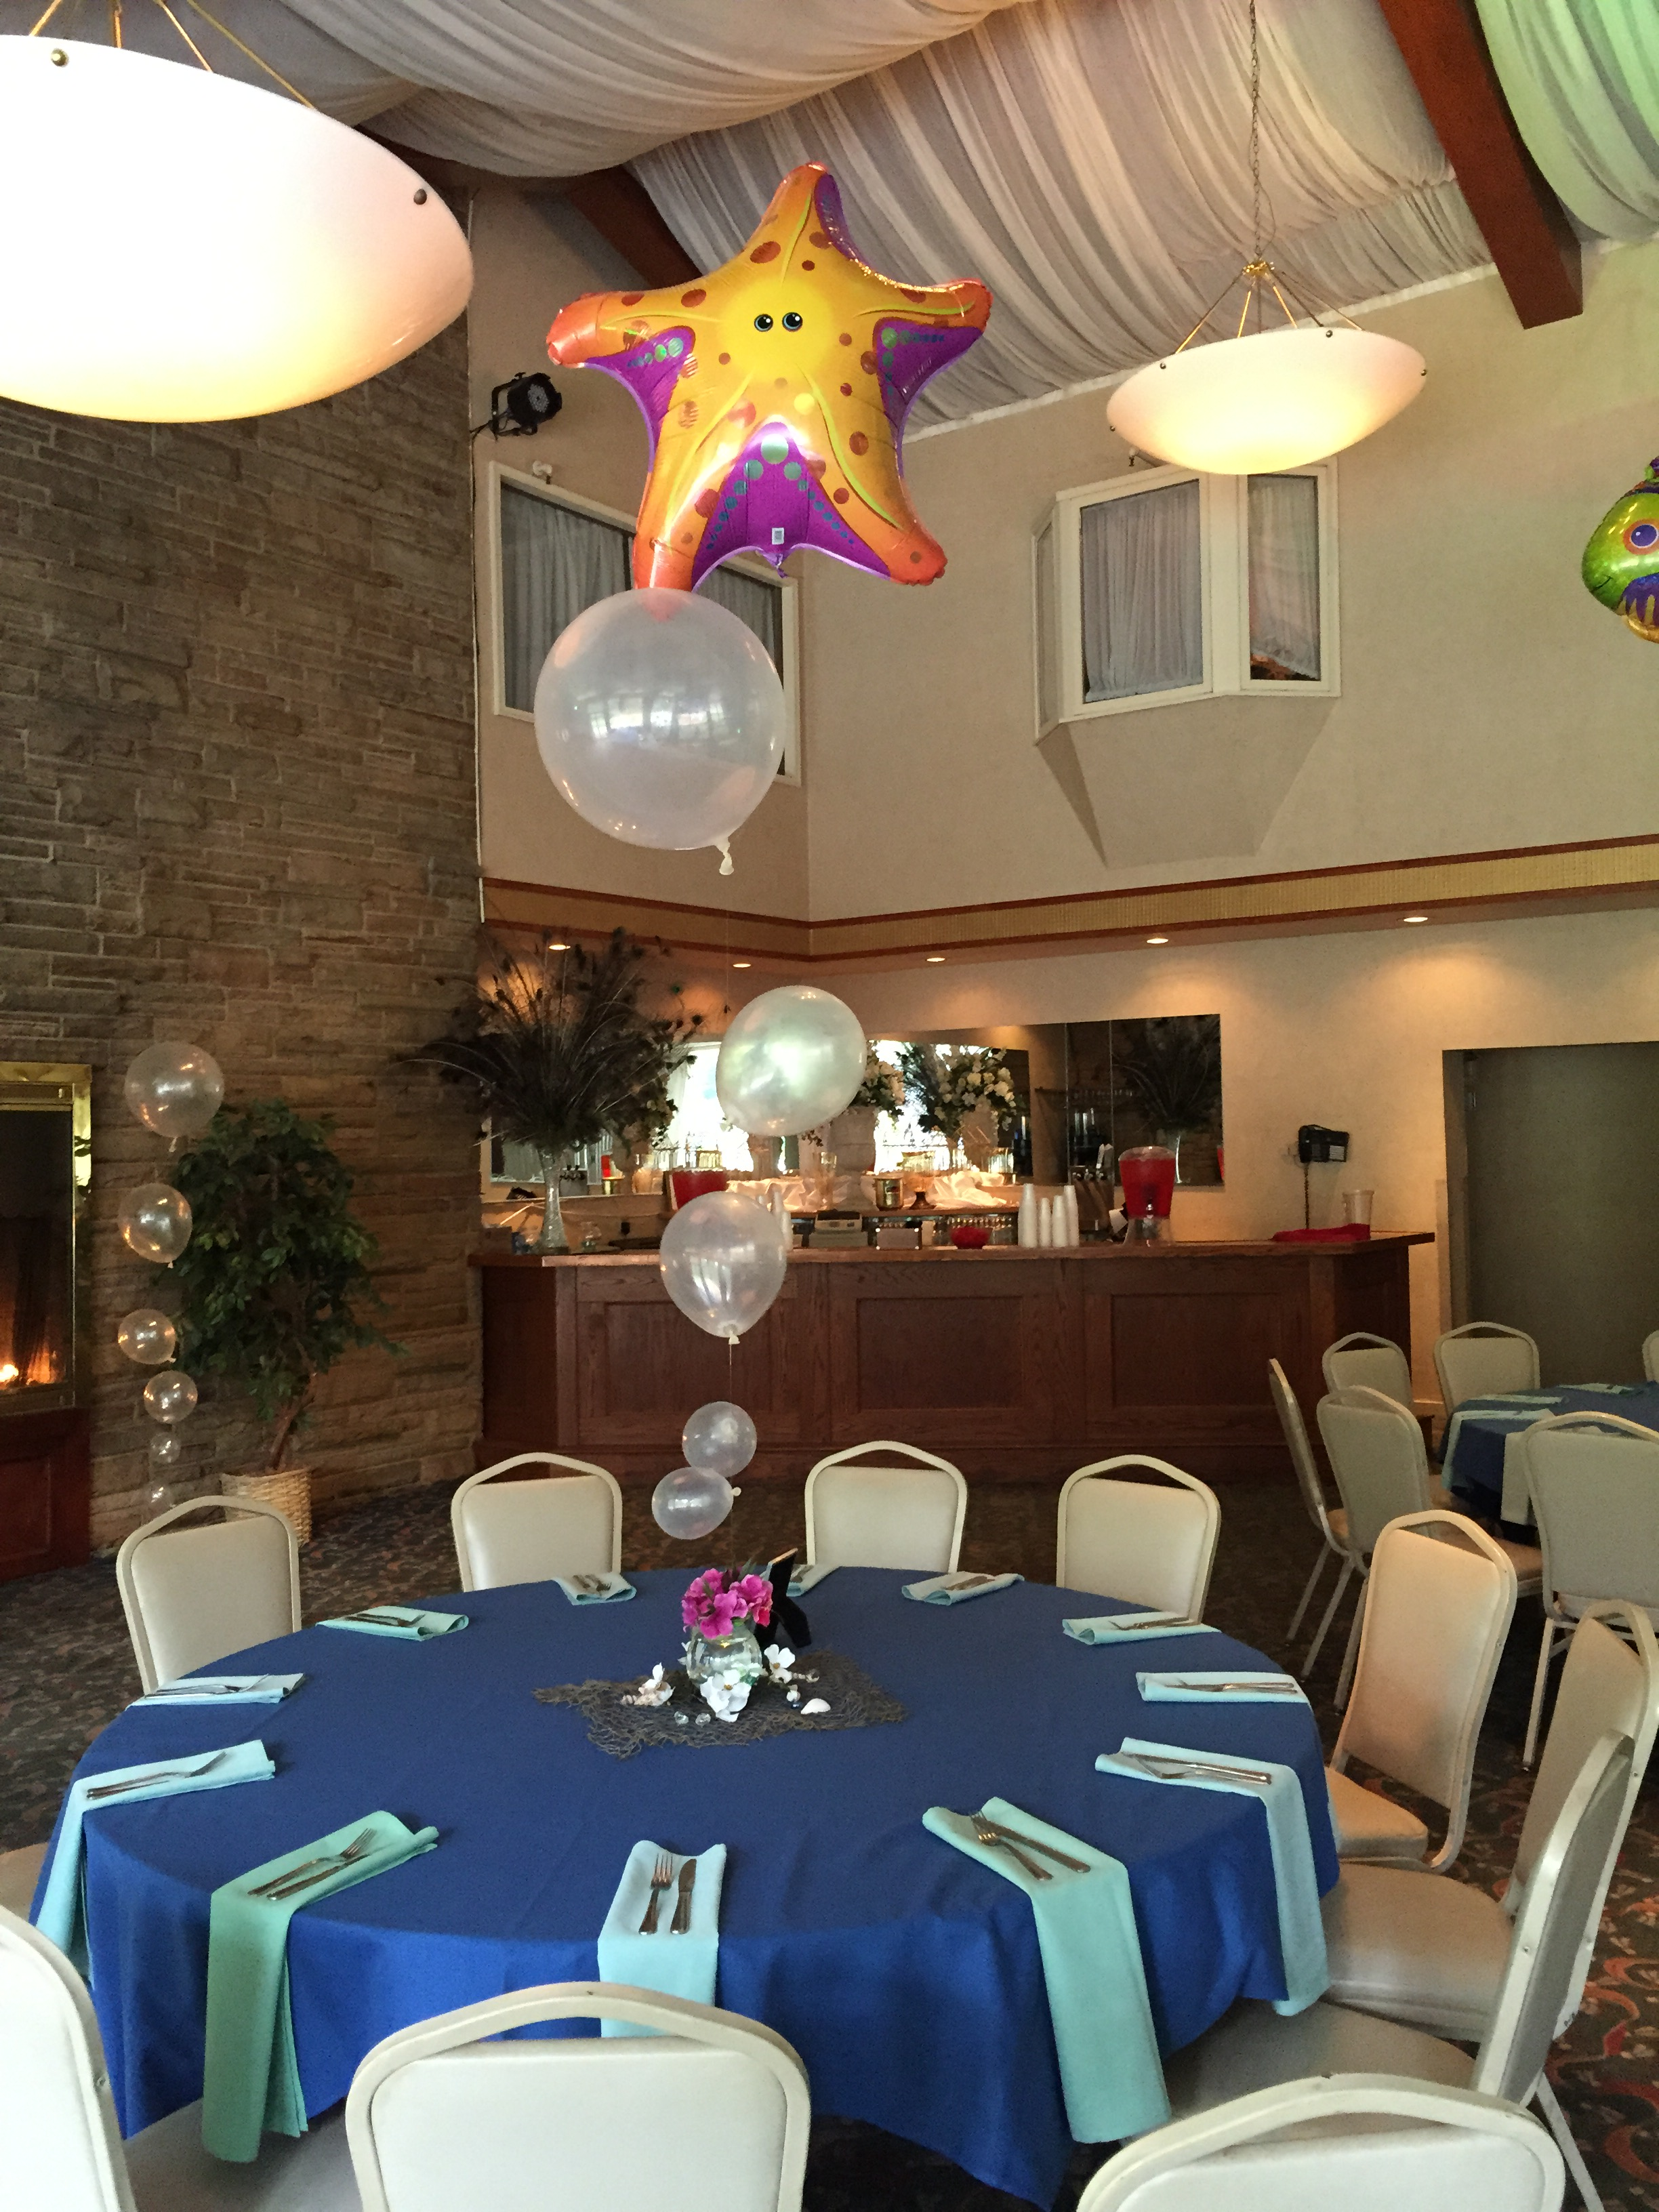 Under the sea theme table decorations albany wedding dj sweet 16 under the sea table decoration junglespirit Gallery